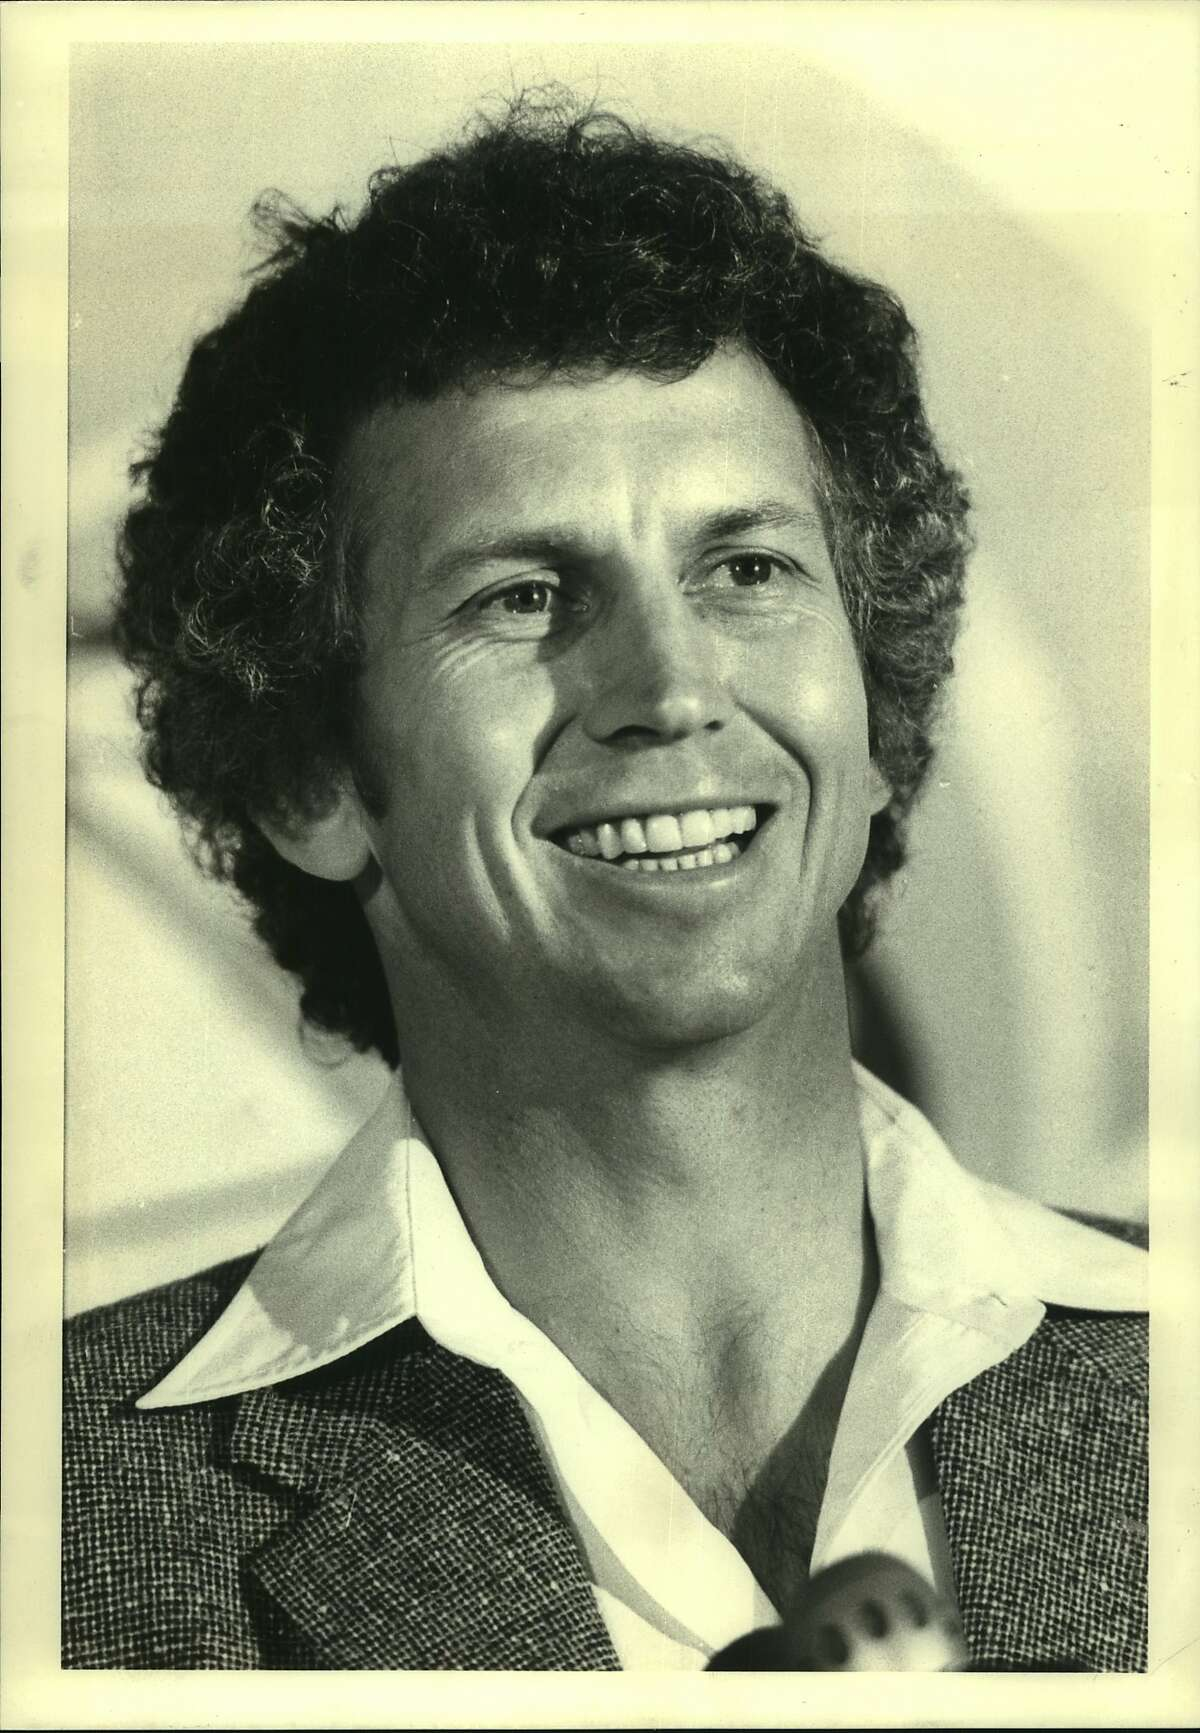 Longtime Dodgers starter Don Sutton: great interview, a terrible hairstyle.